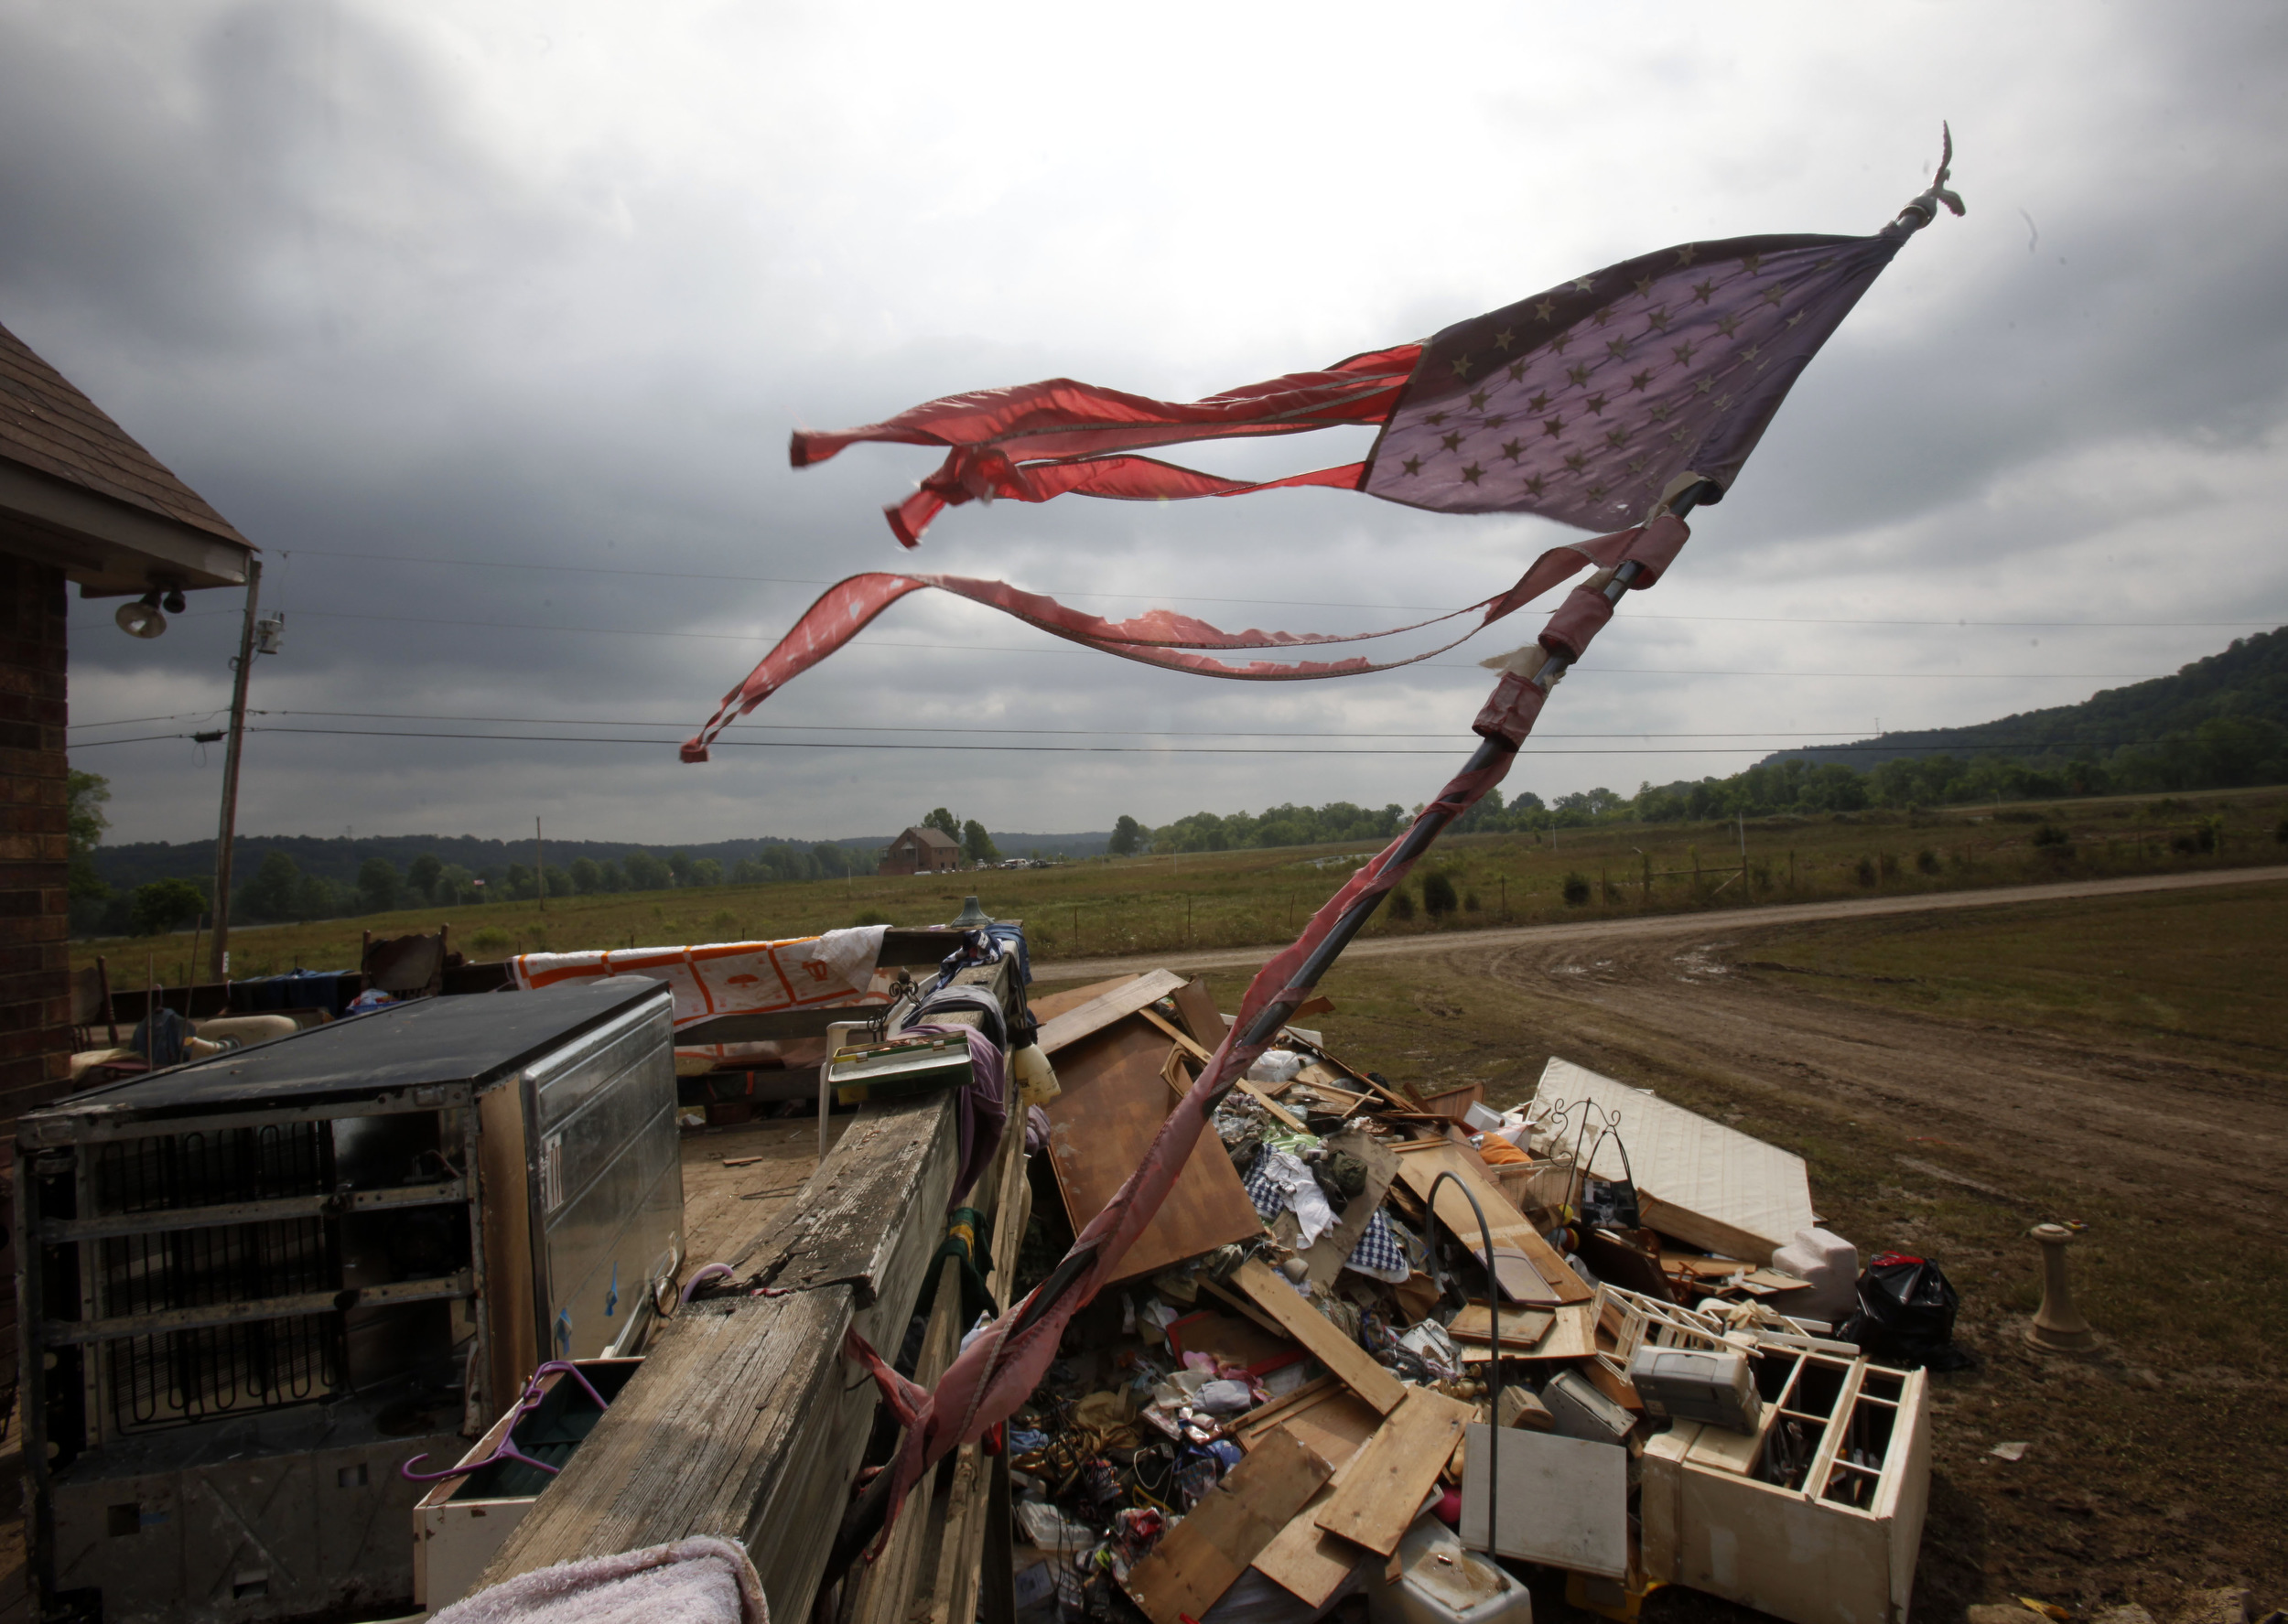 A flag is in tatters amidst wreckage after the historic 2010 flood inundated this floodplain along the Cumberland river near Ashland City, Tenn.